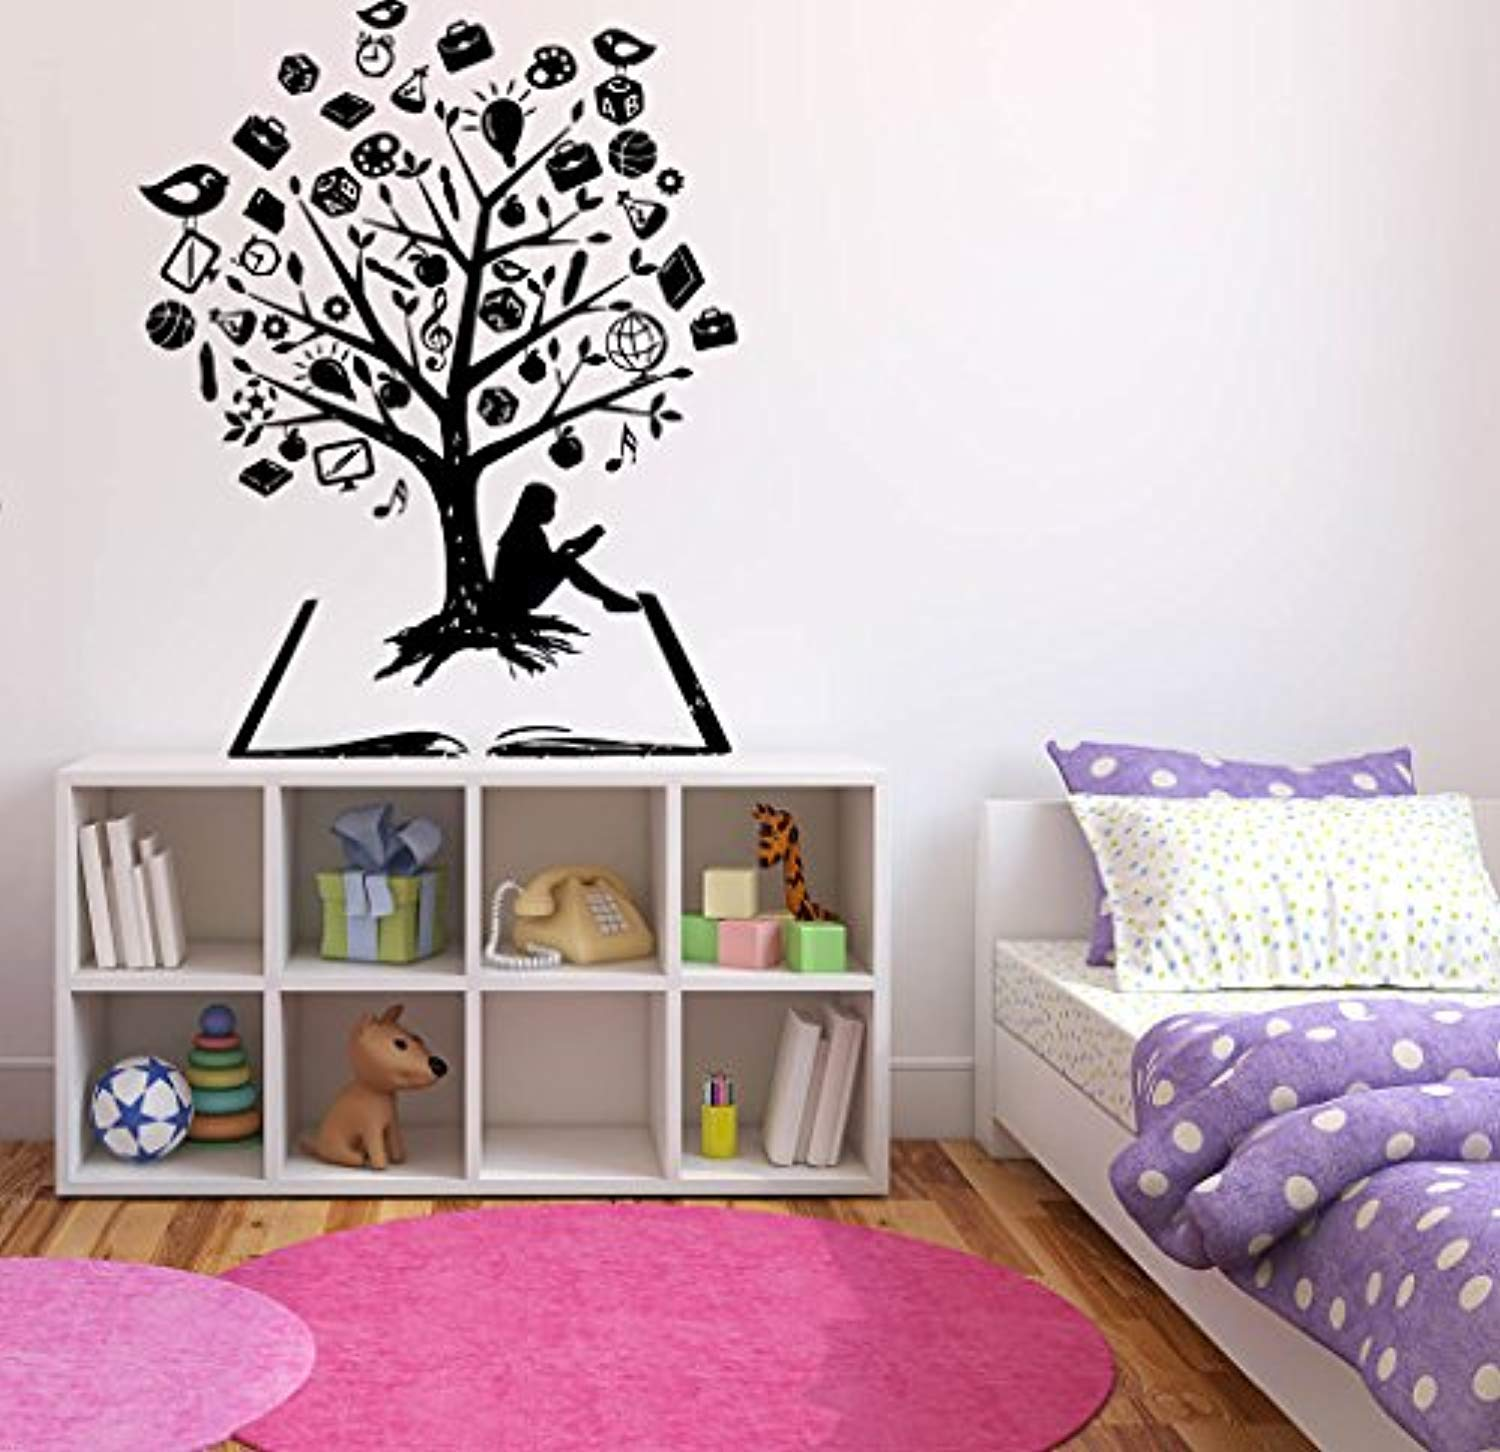 Amazon com window sticker decal tree book roots girl school branches birds living room kids children room decorwall vinyl sk1223 home improvement